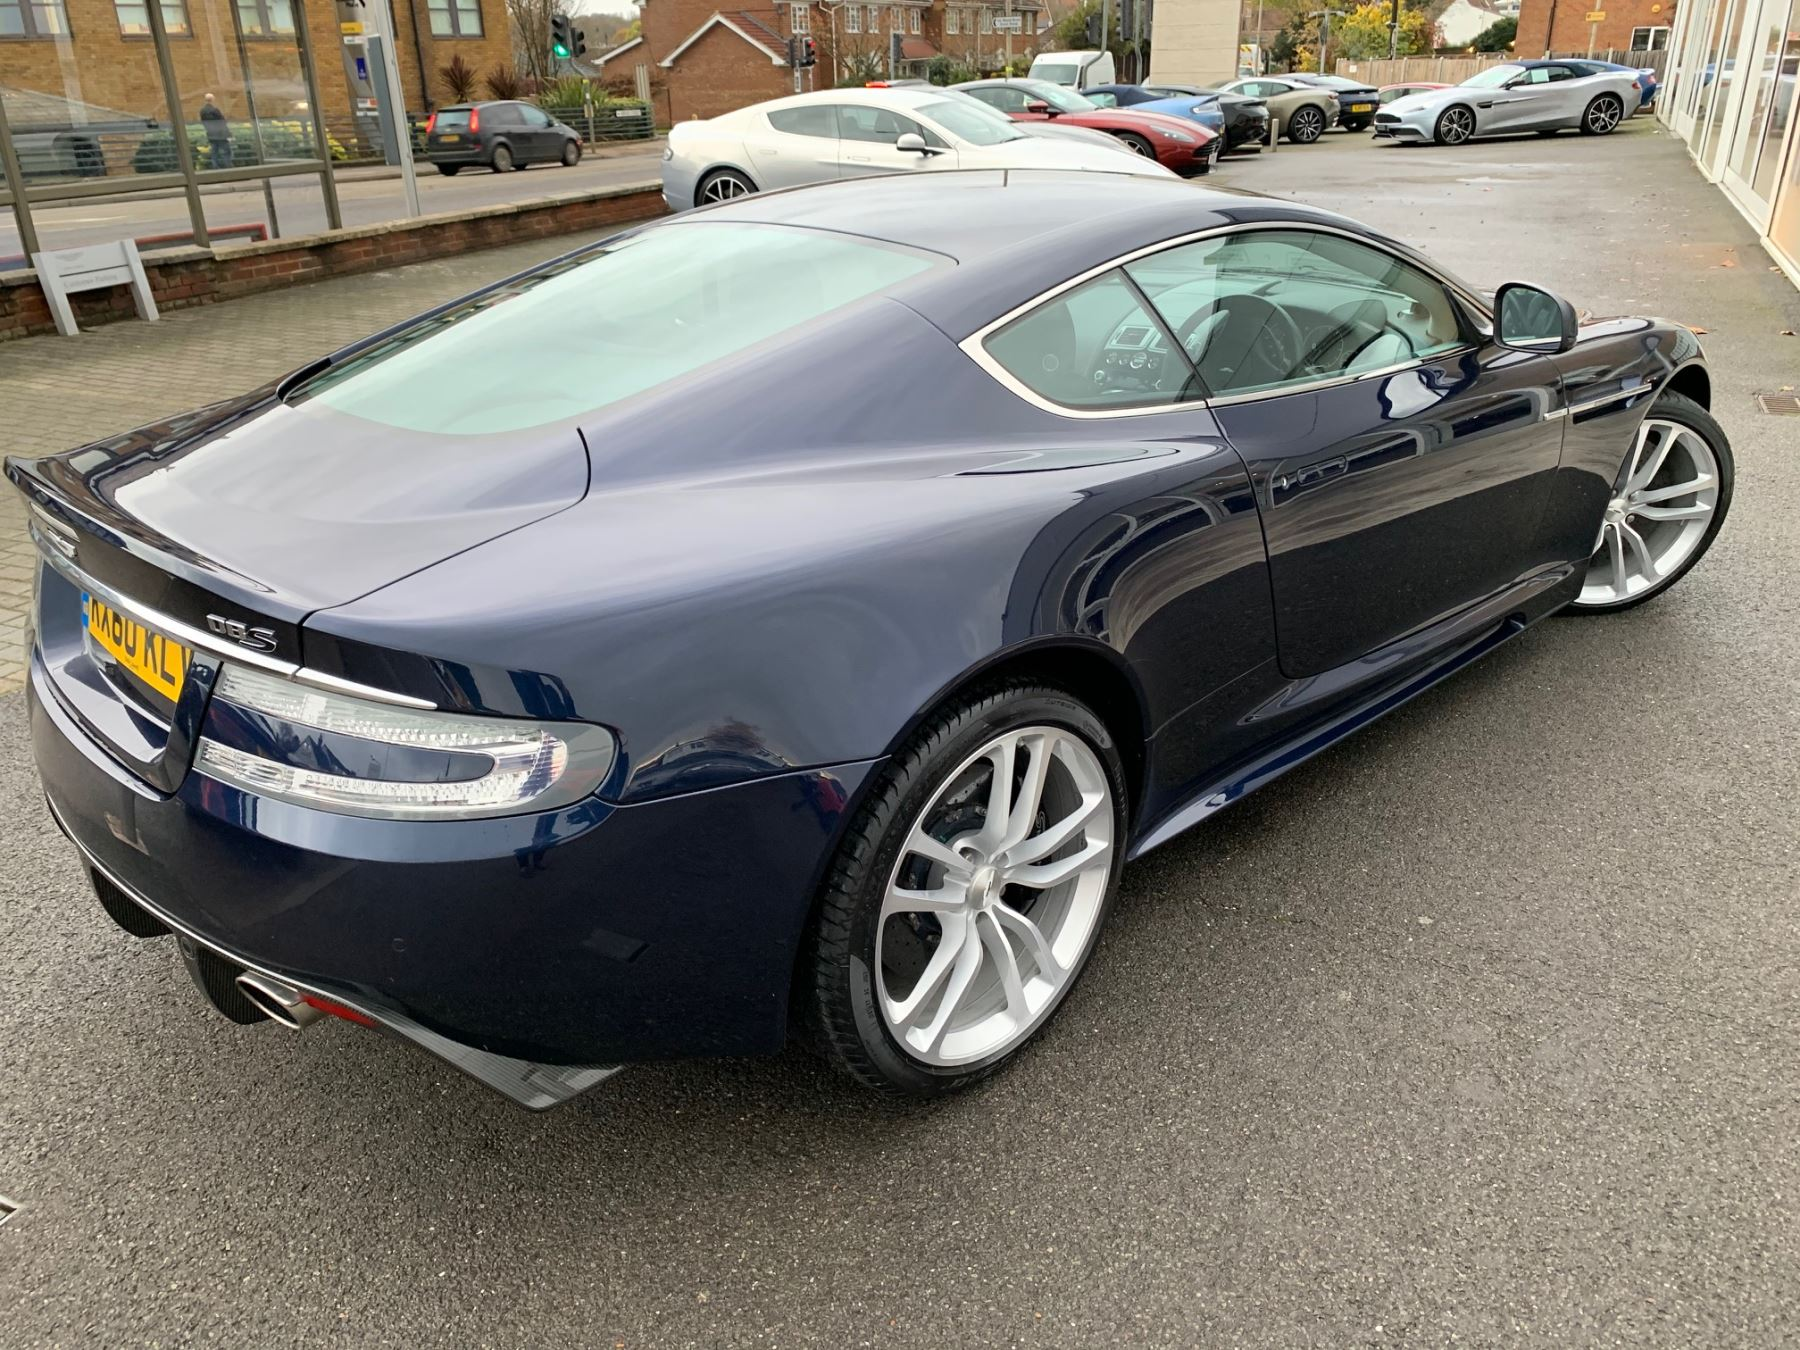 Aston Martin DBS V12 2dr Touchtronic image 18